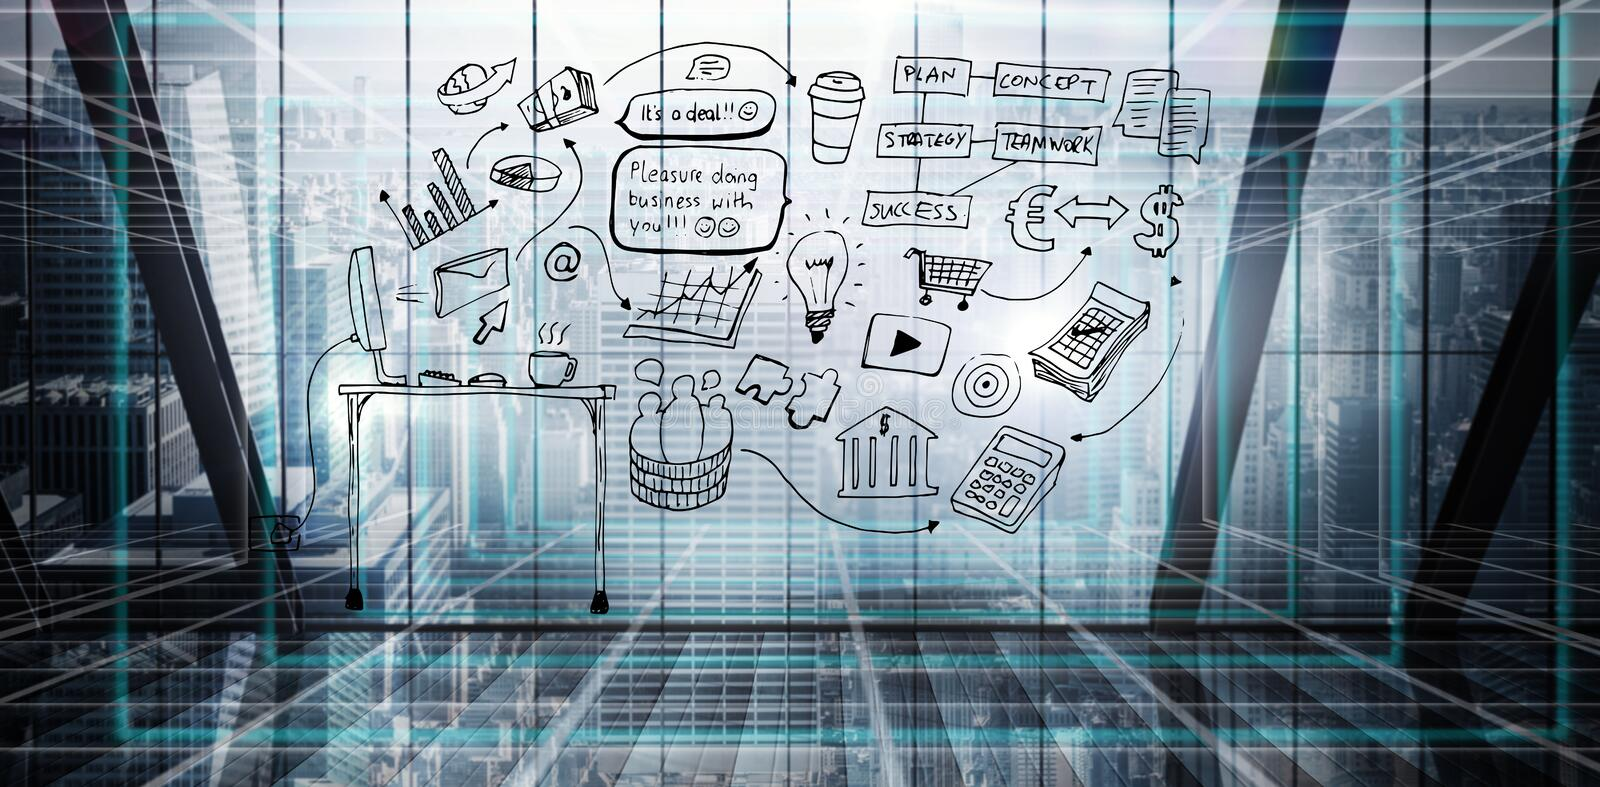 Composite image of brainstorm graphic. Brainstorm graphic against abstract technology background stock illustration